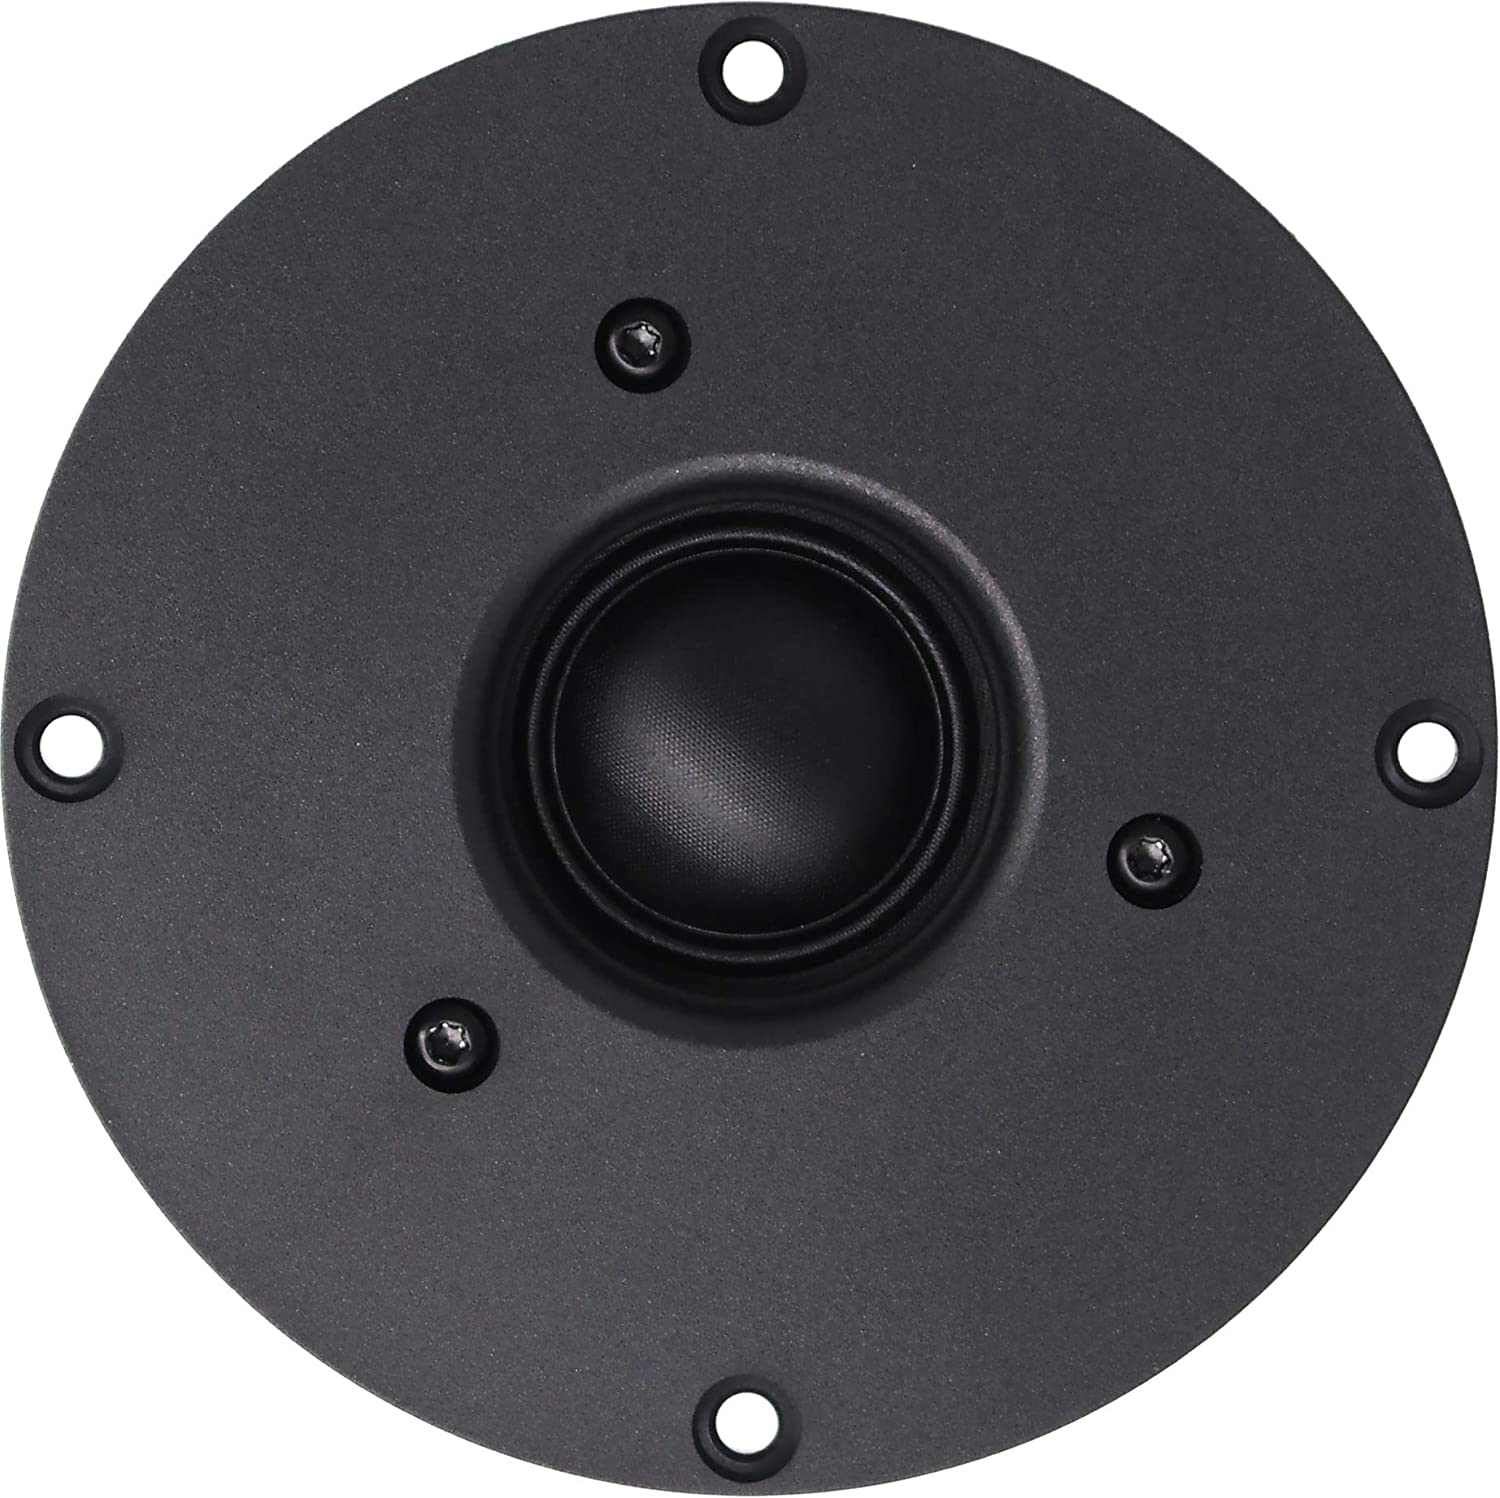 Peerless by Tymphany D27TG35-06 1 Silk Dome Tweeter